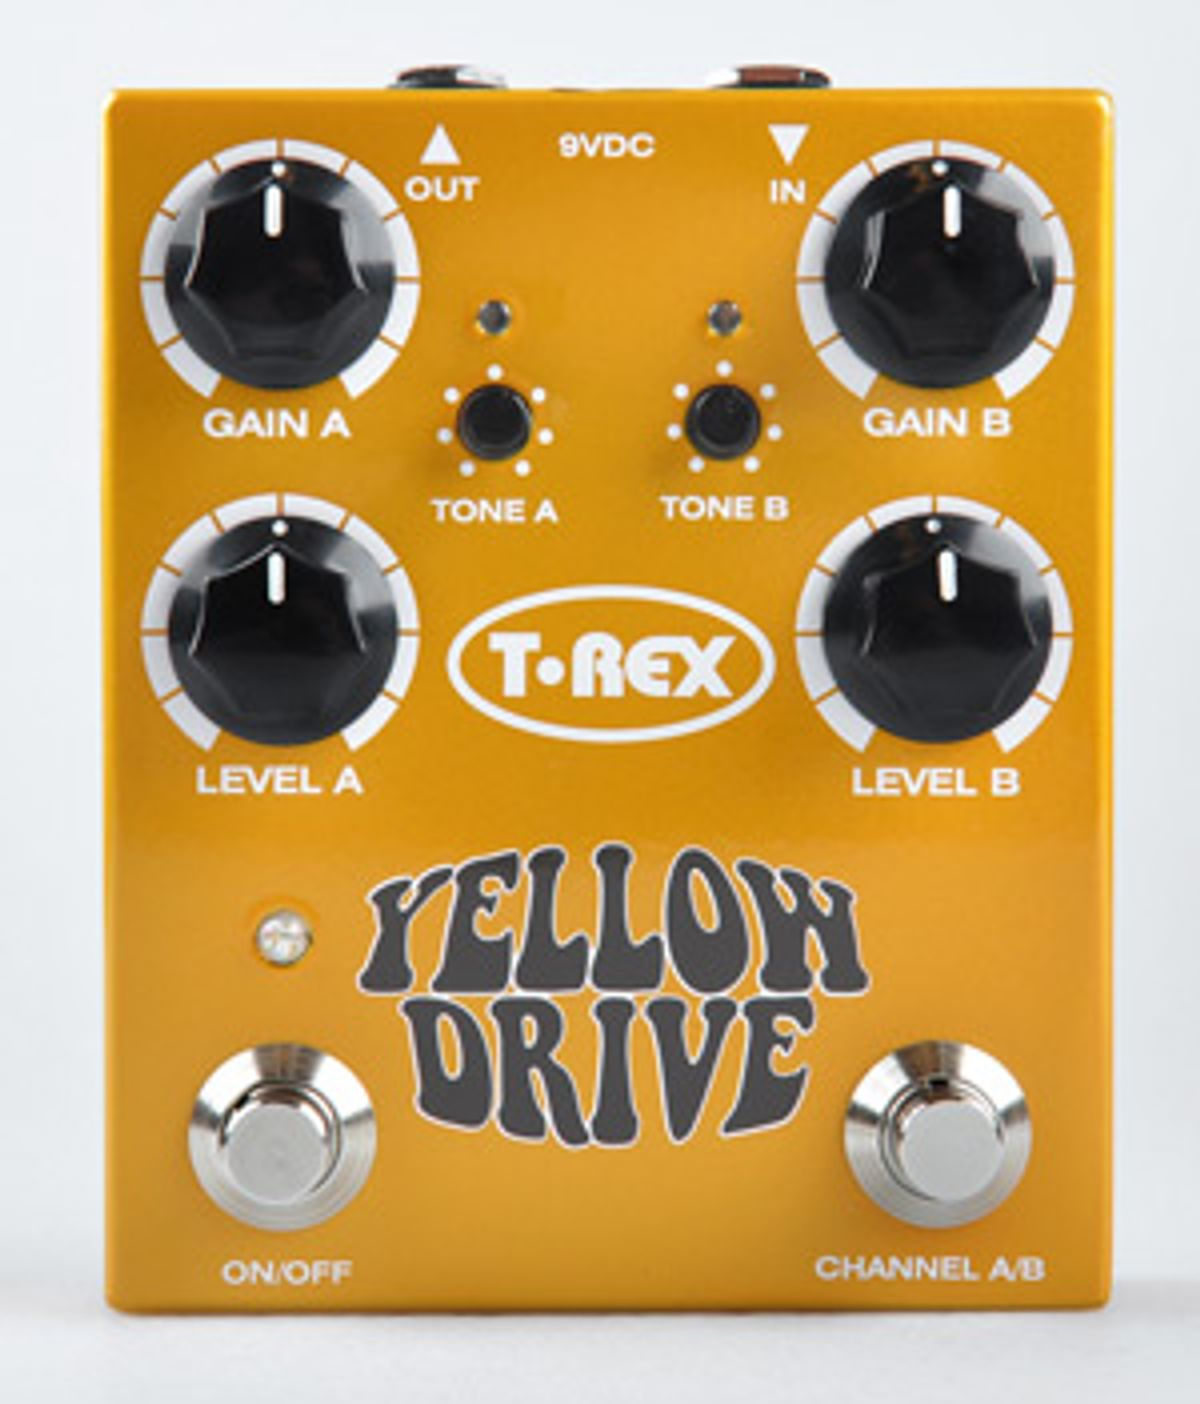 T-Rex and Guitar Center Launch Exclusive Pedal Line With Yellow Drive